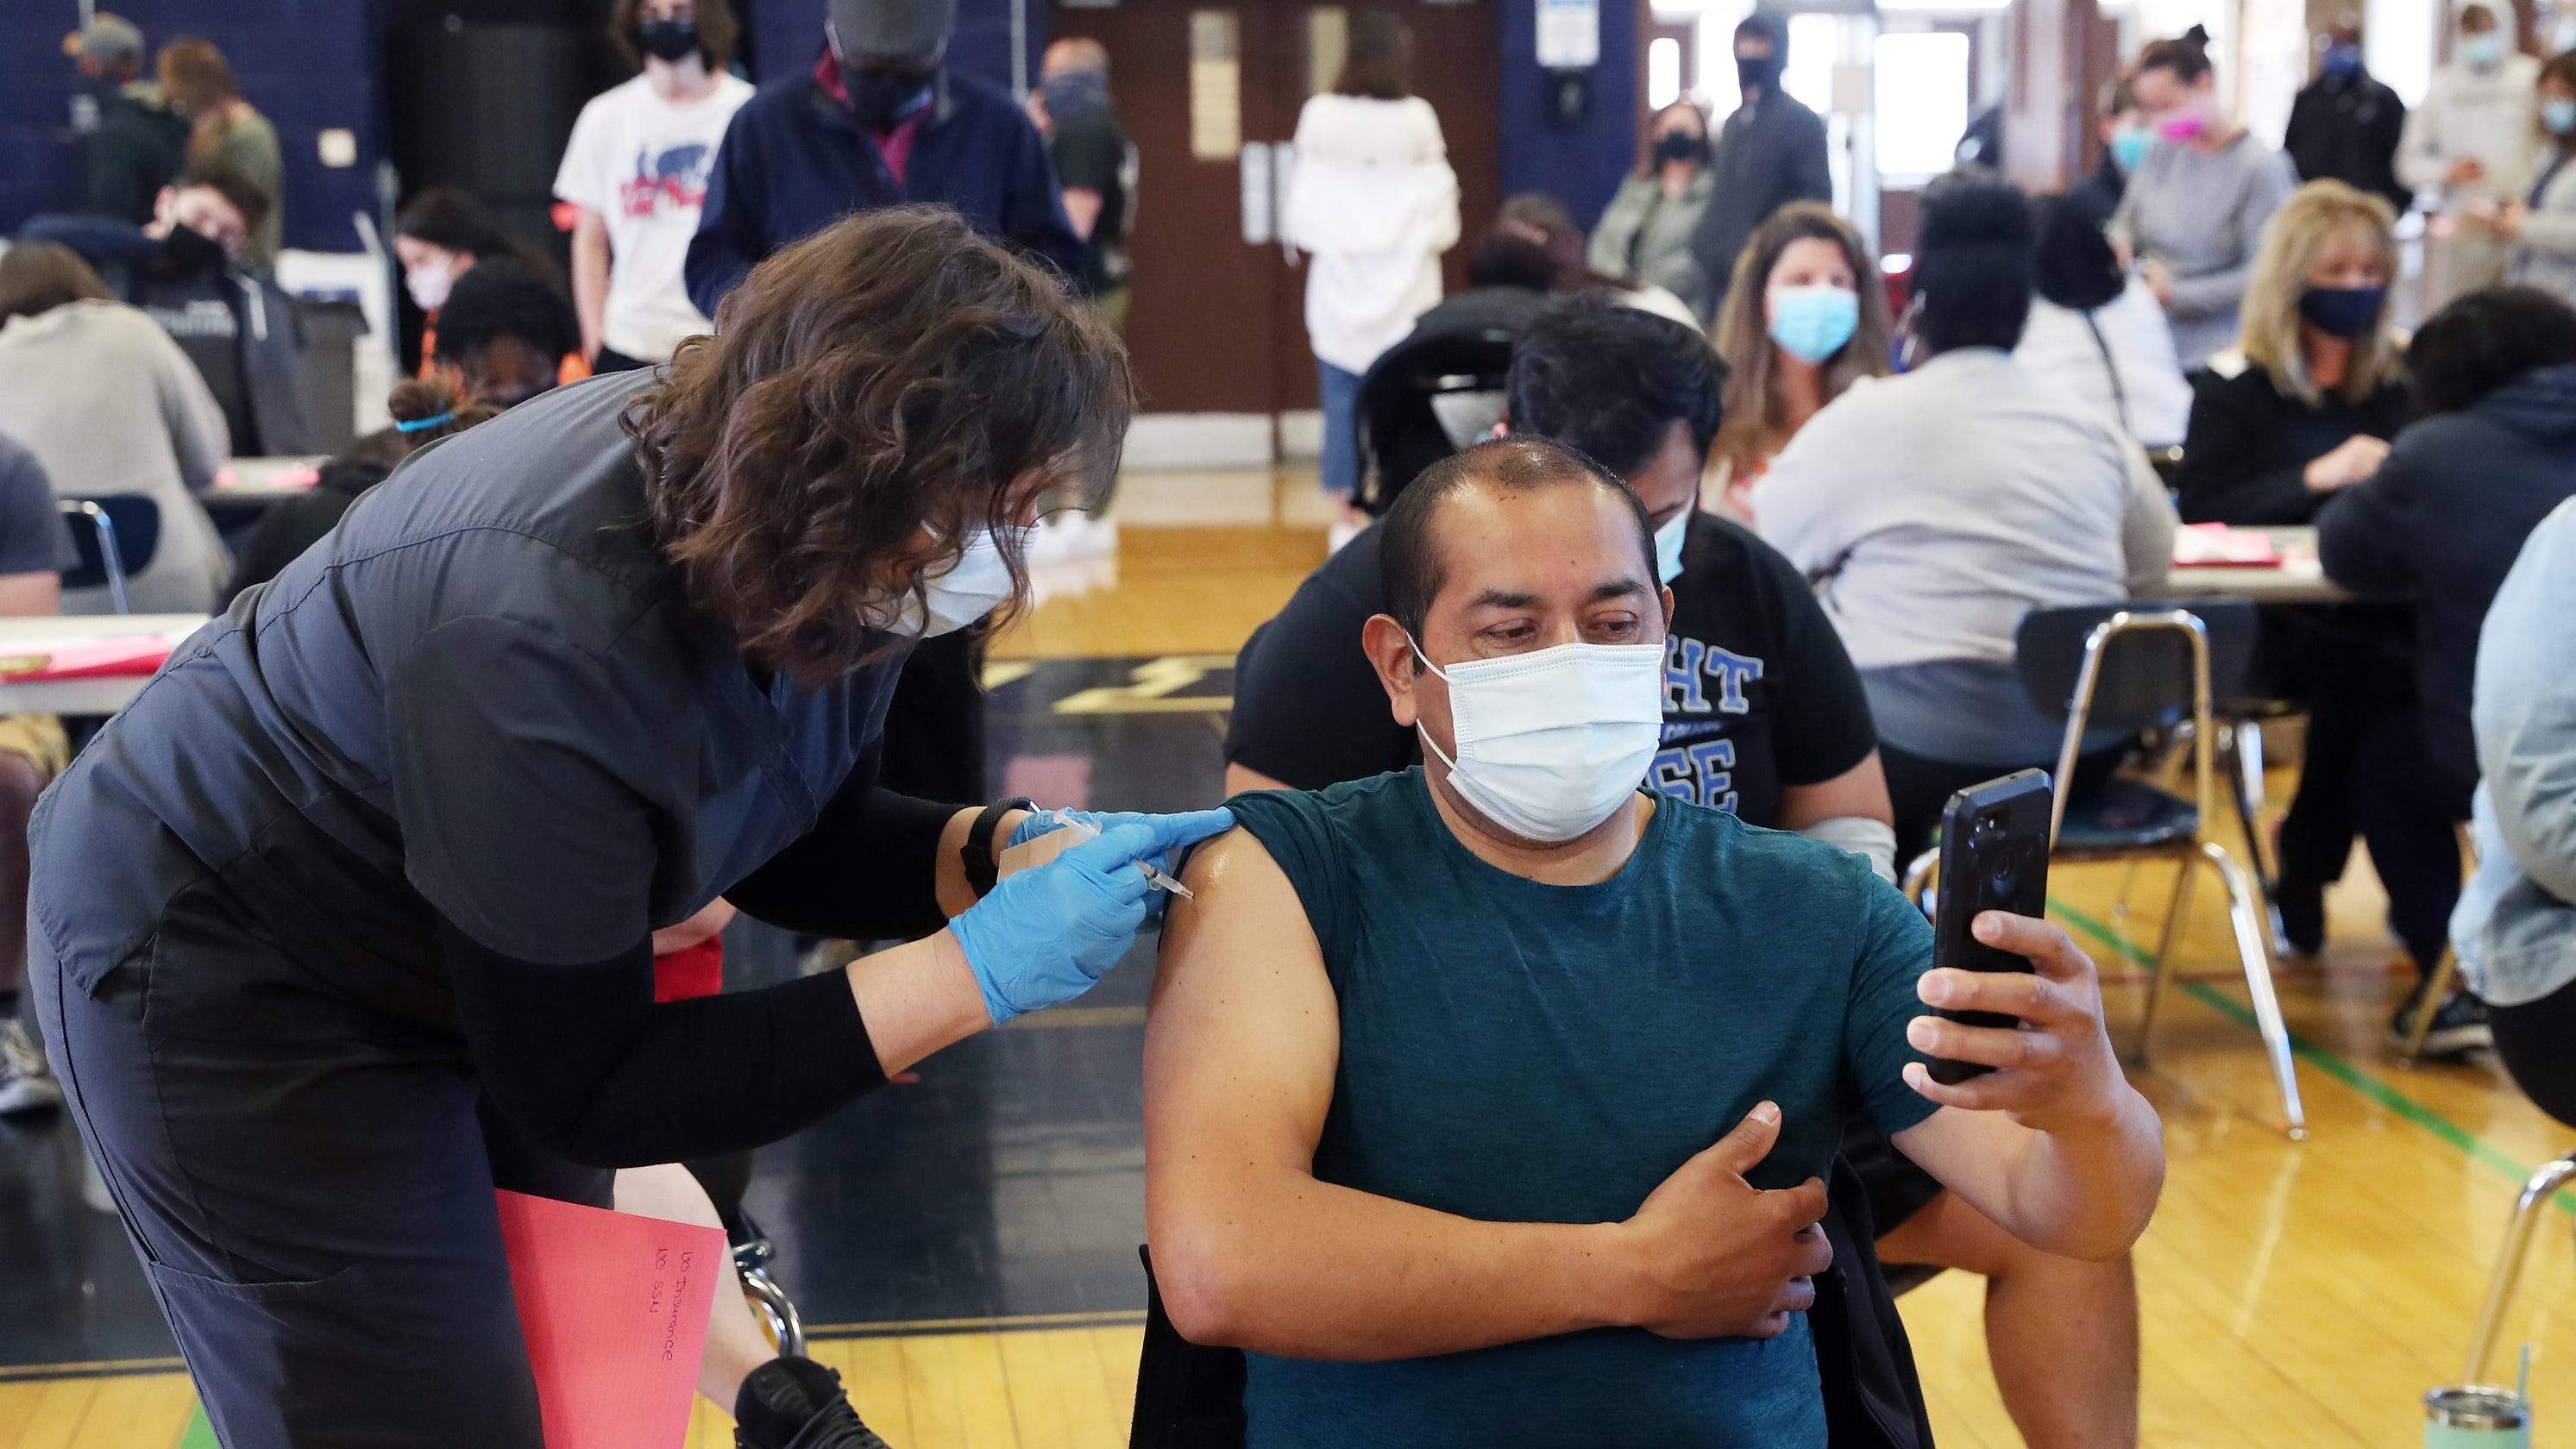 'We have to assume the best:' Despite hesitancy, hundreds vaccinated at Poughkeepsie High